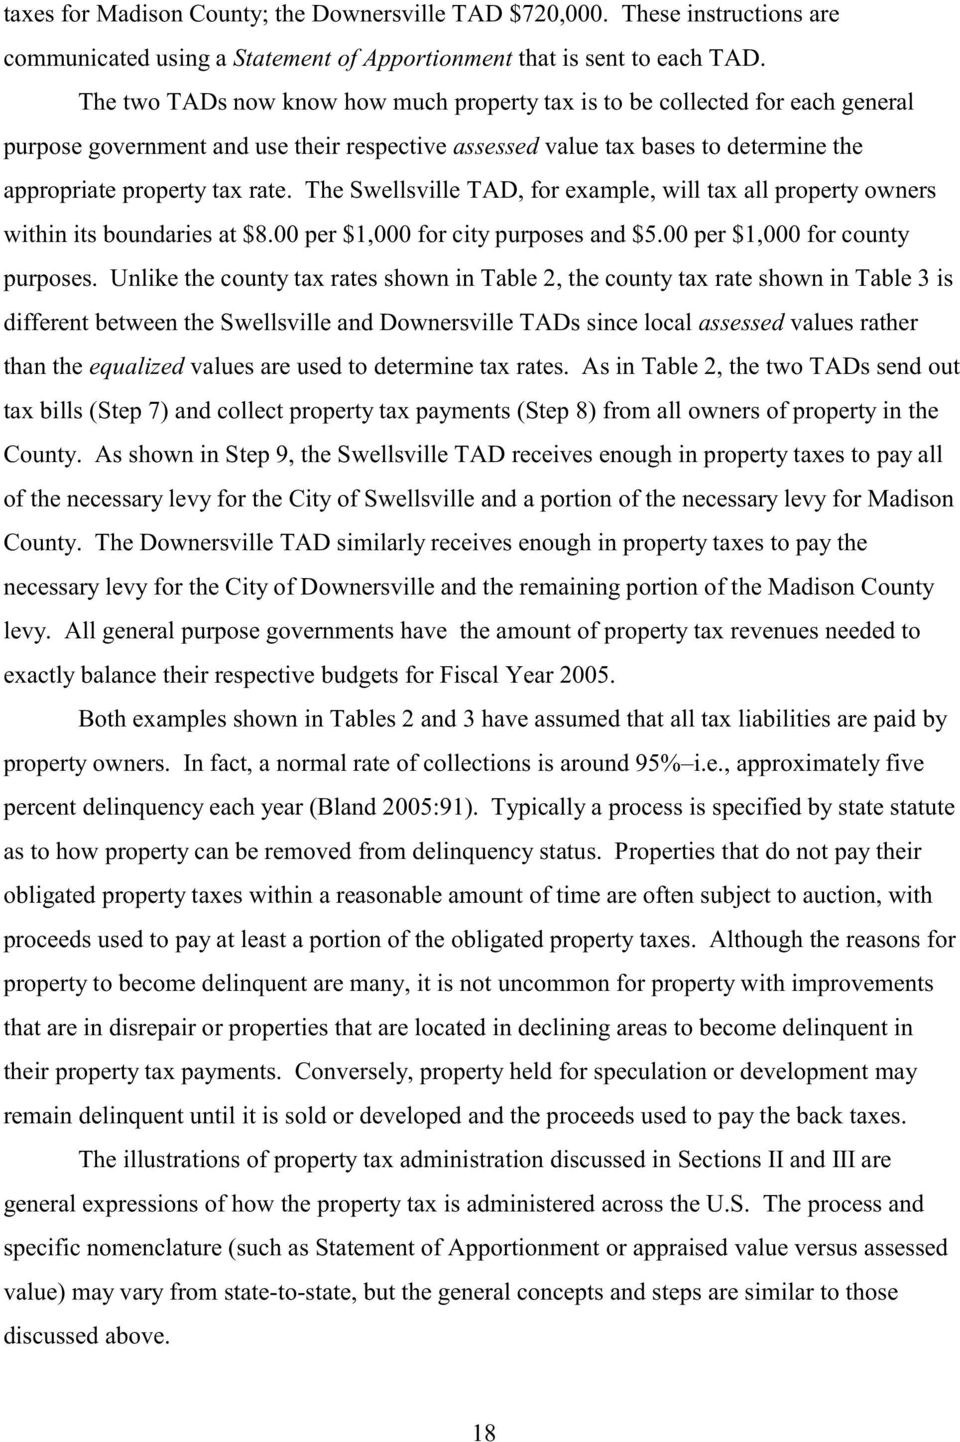 The Swellsville TAD, for example, will tax all property owners within its boundaries at $8.00 per $1,000 for city purposes and $5.00 per $1,000 for county purposes.